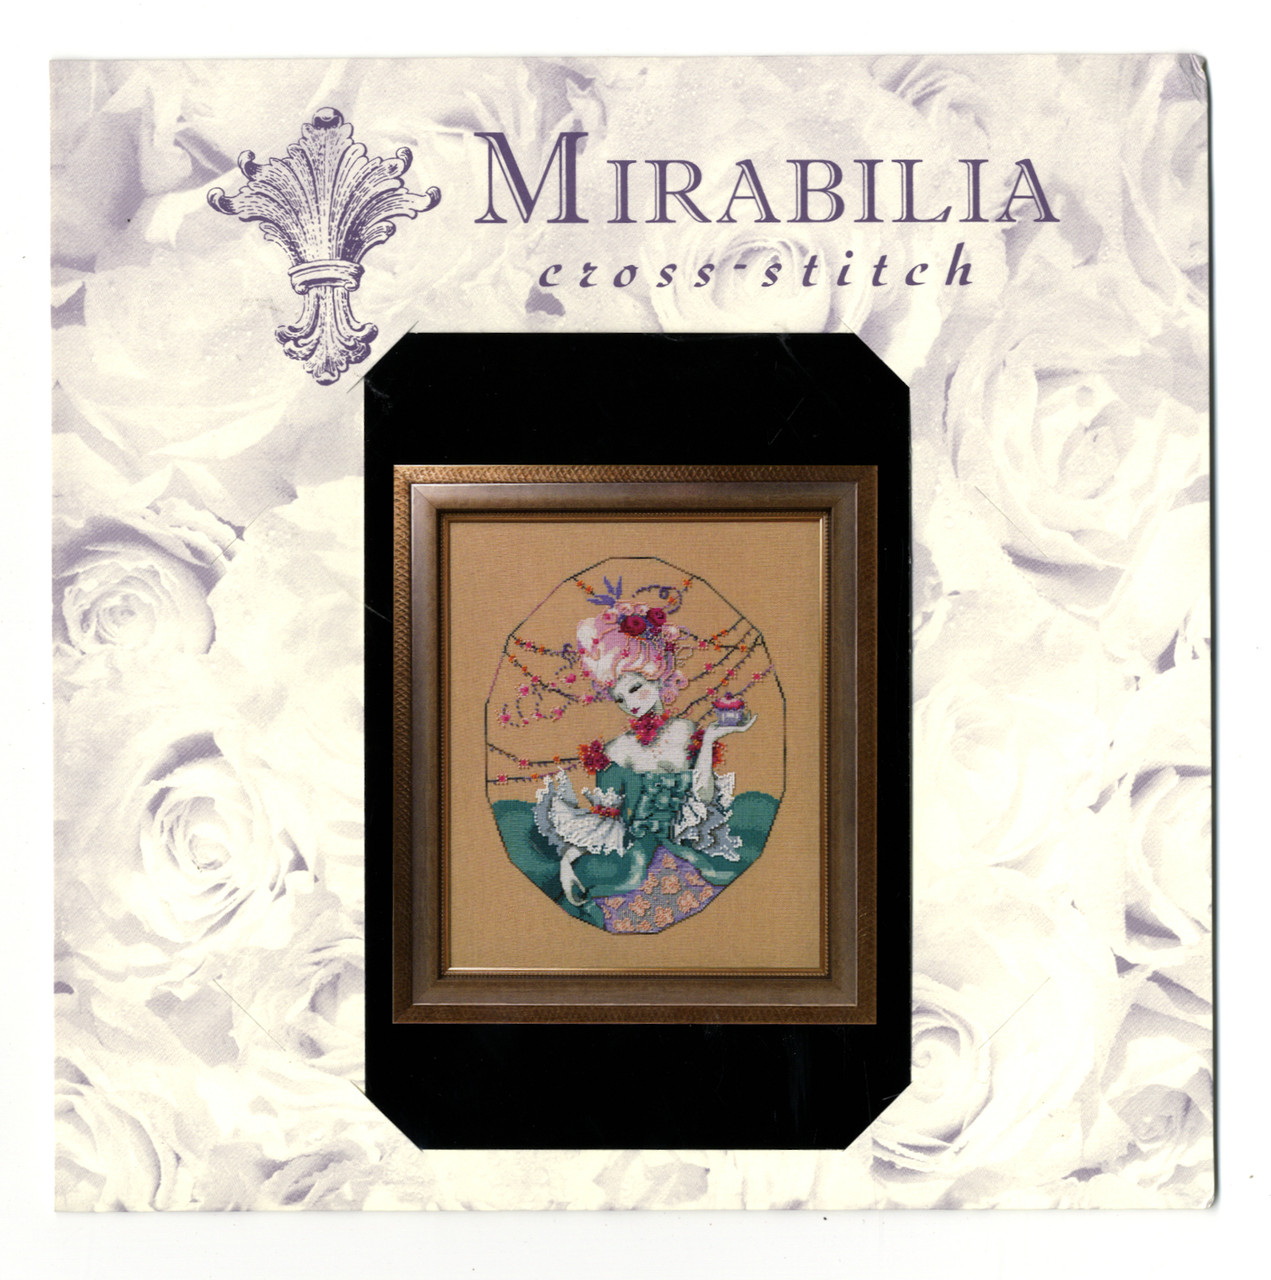 Mirabilia - The Baker's Wife